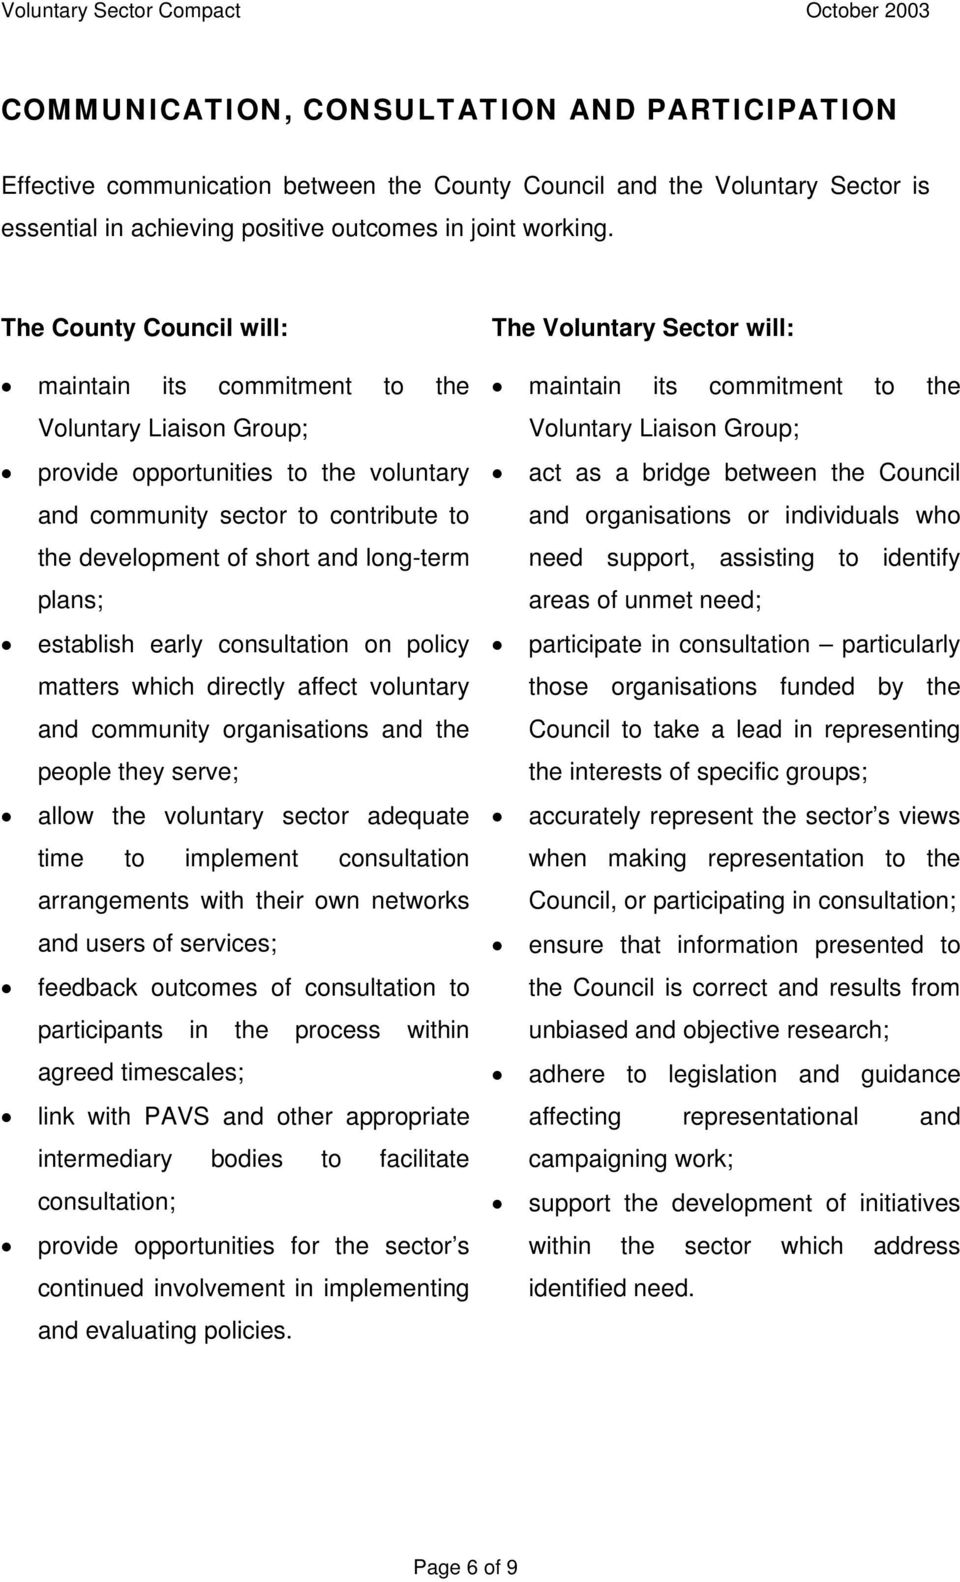 plans; establish early consultation on policy matters which directly affect voluntary and community organisations and the people they serve; allow the voluntary sector adequate time to implement